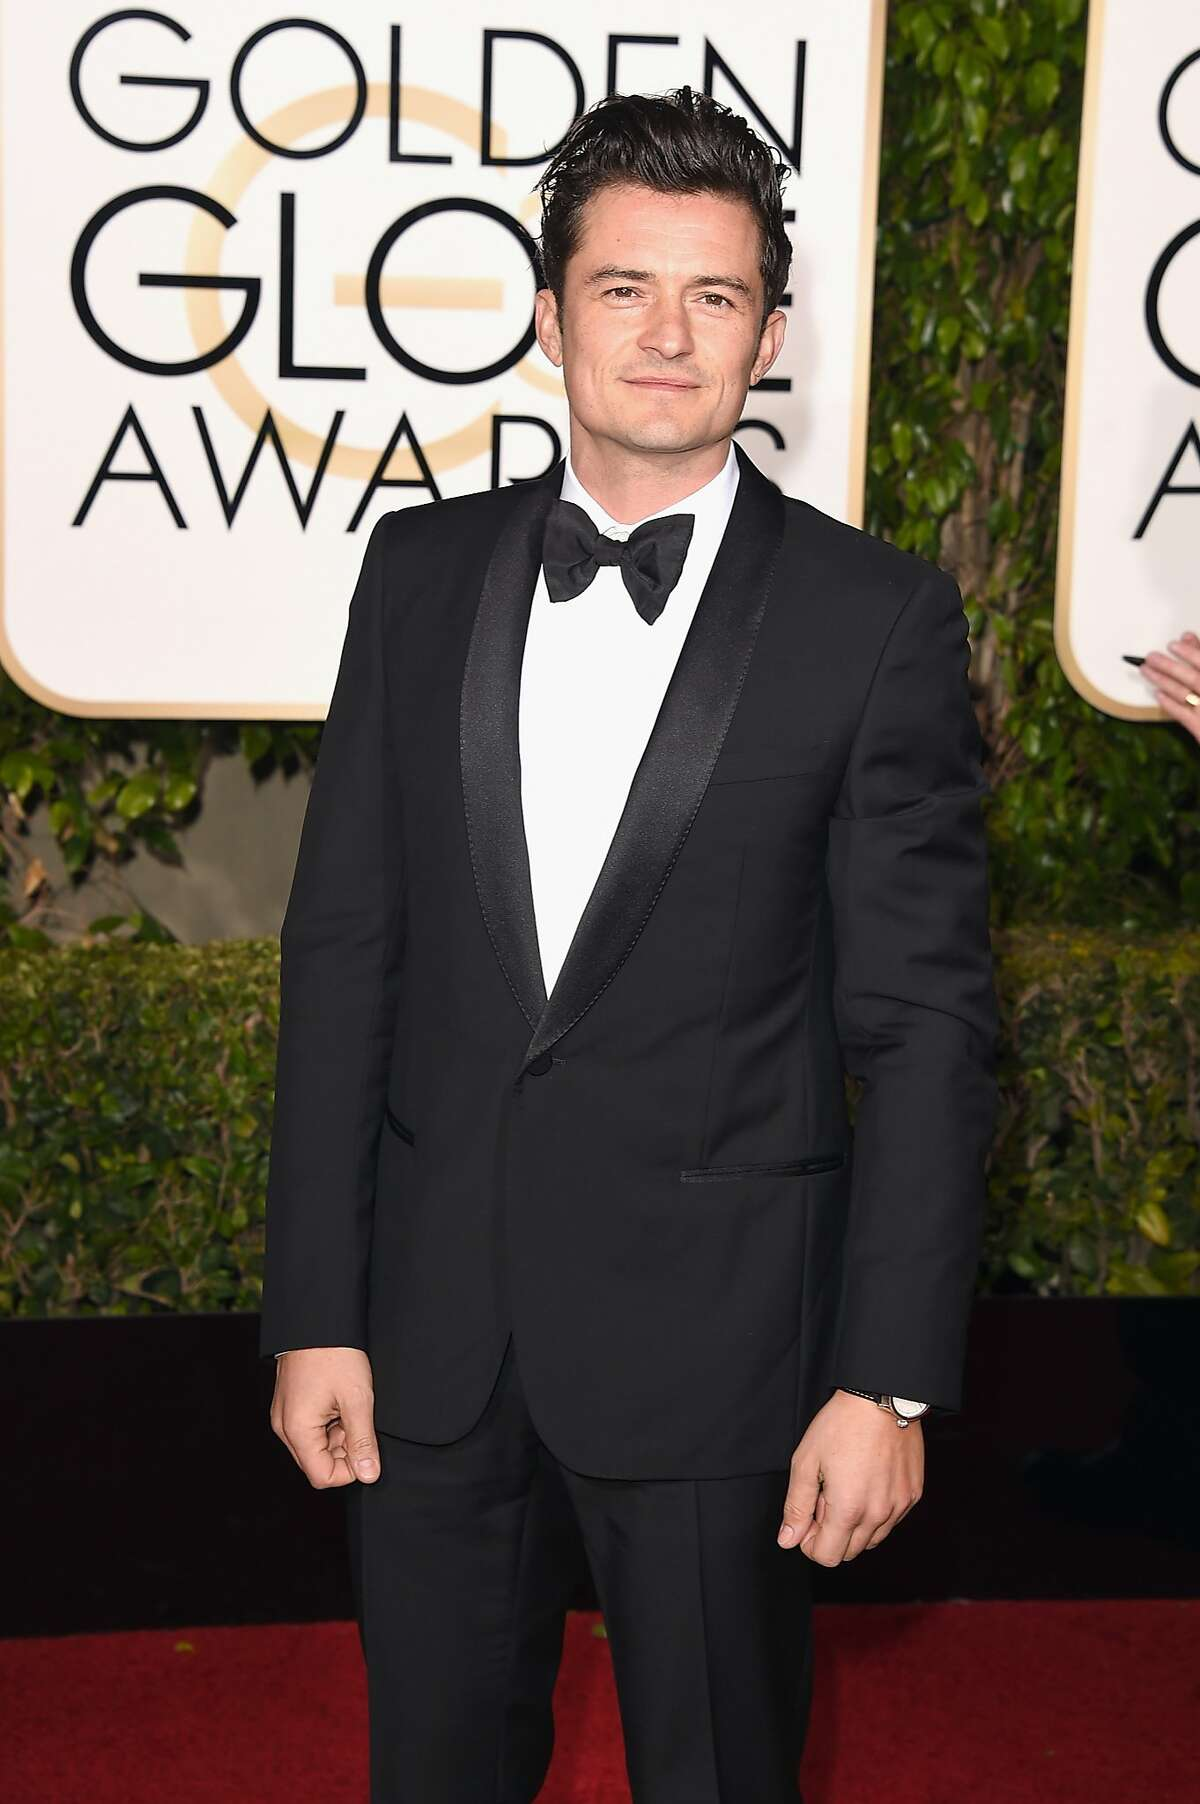 PIGS: Orlando Bloom's phobia of pigs would have remained a secret if pigs were not let loose on the set of